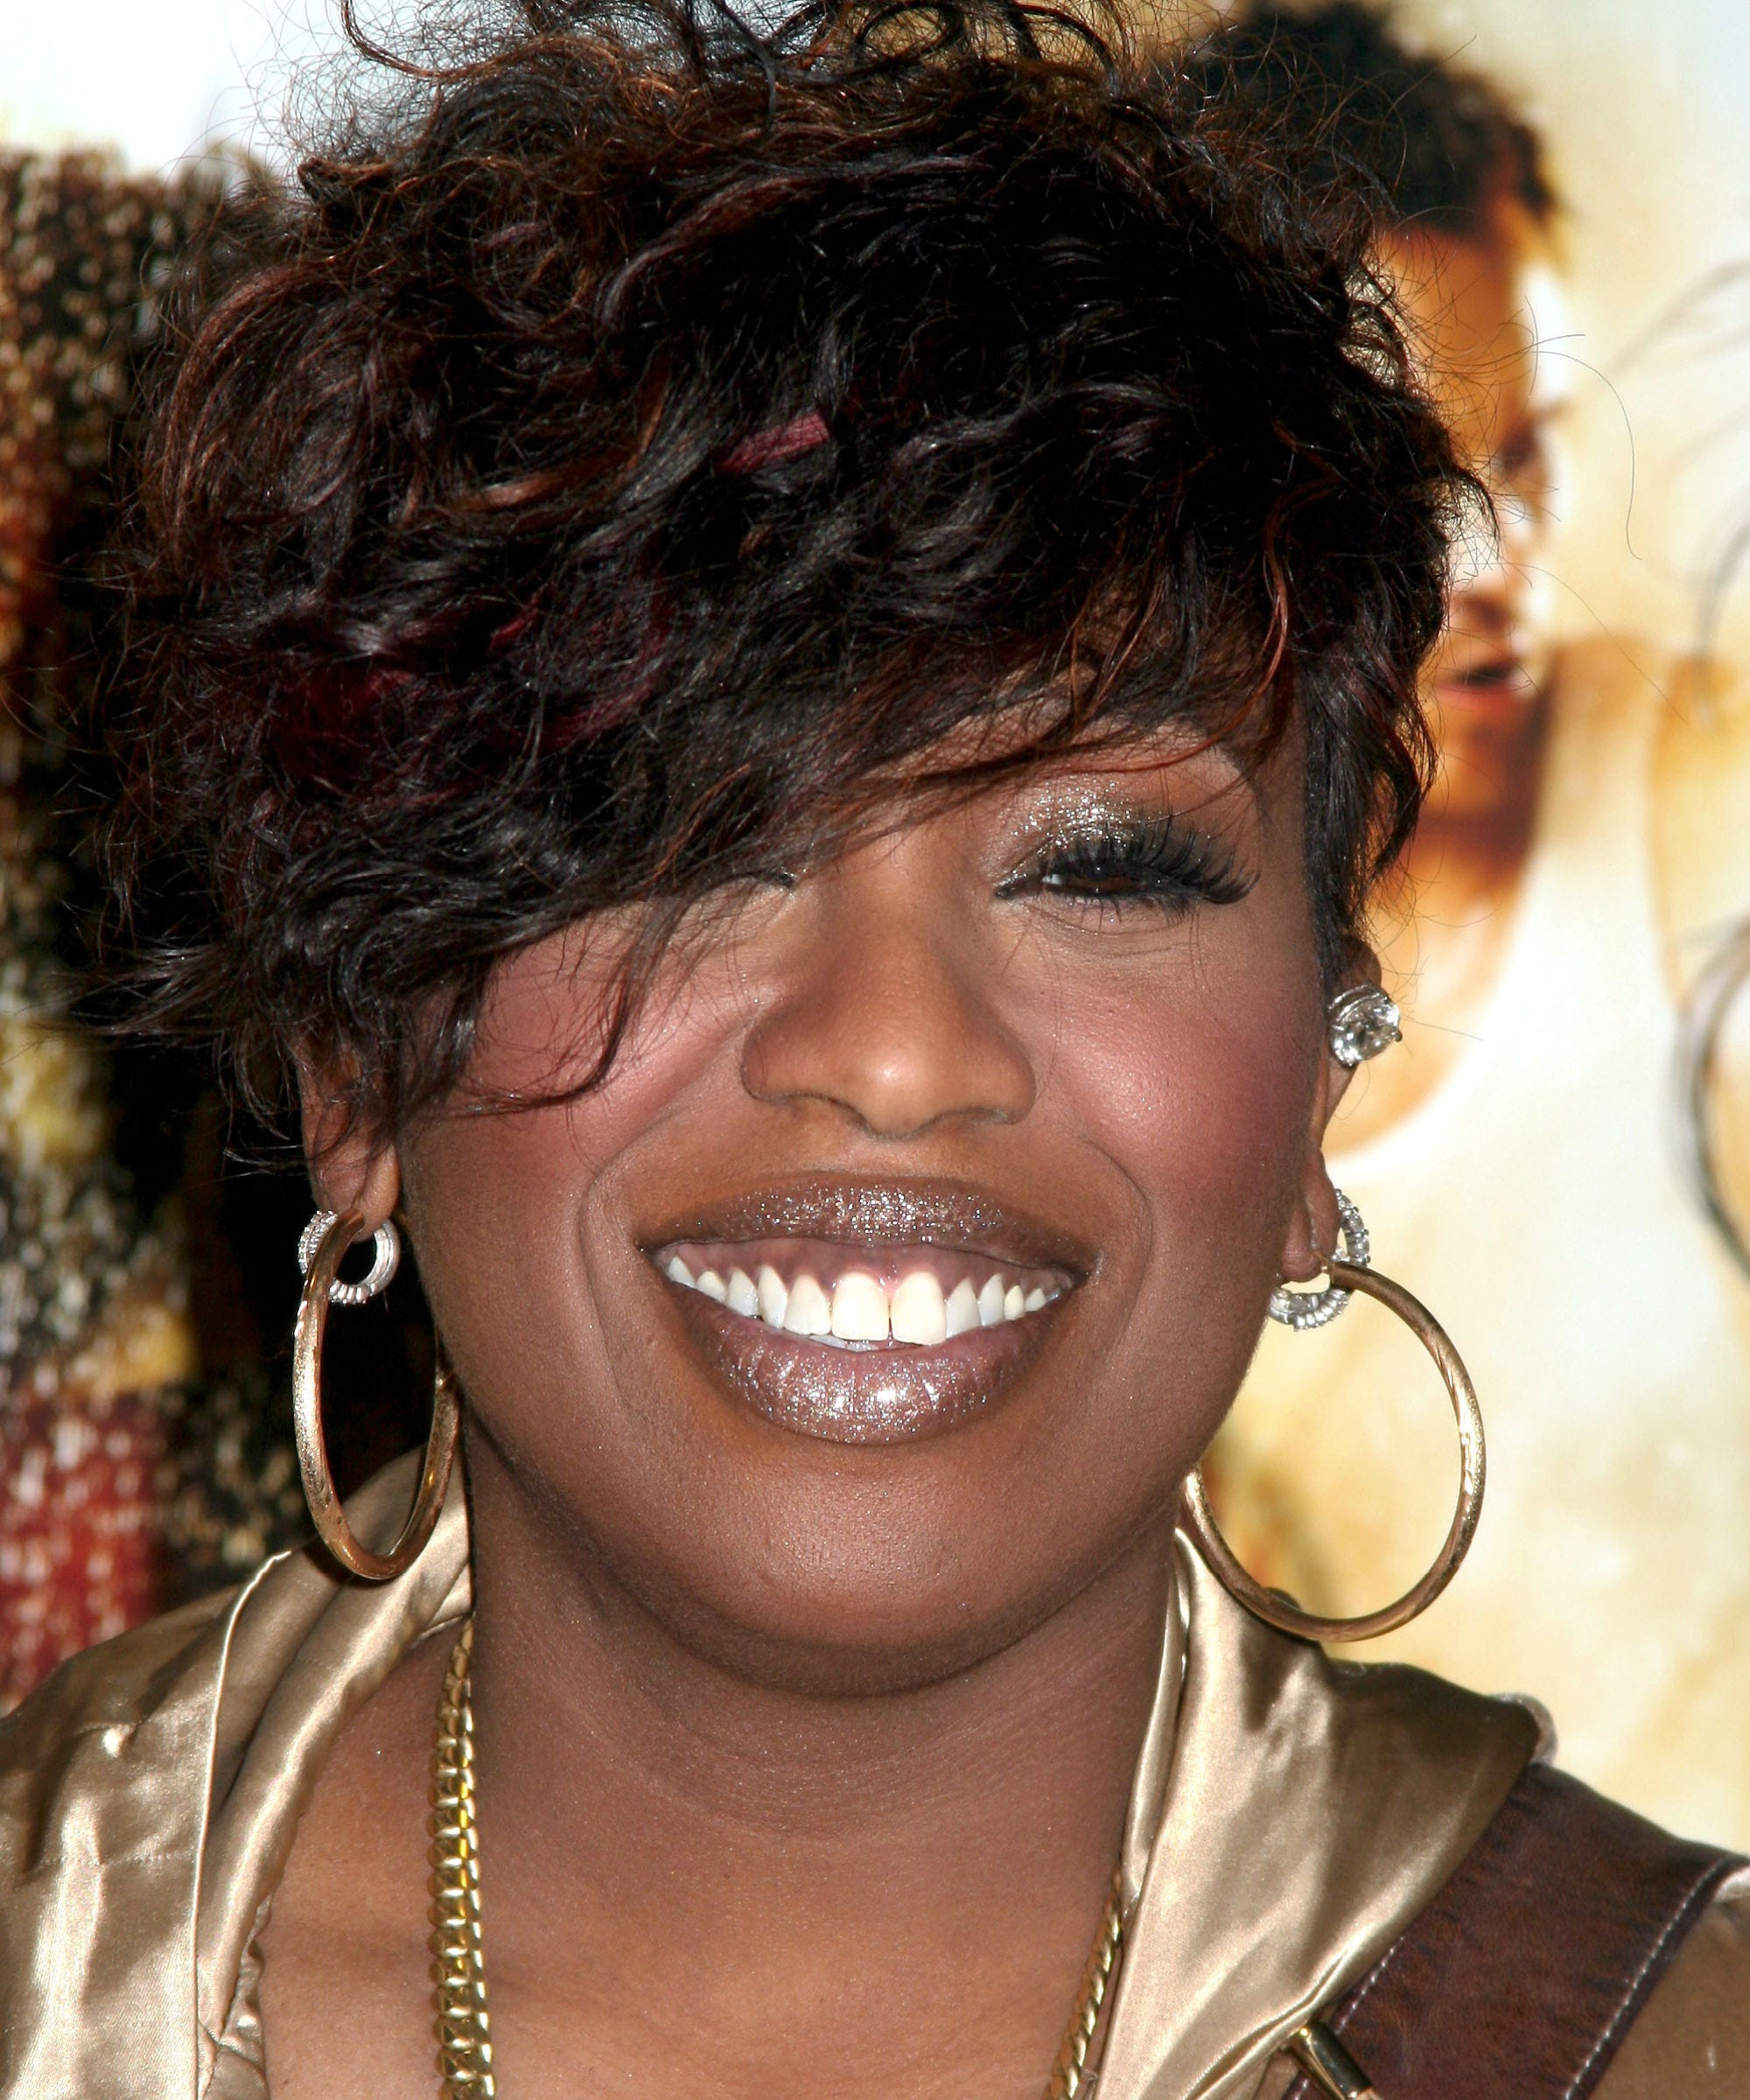 Missy Elliott nudes (46 foto and video), Sexy, Sideboobs, Instagram, cameltoe 2006